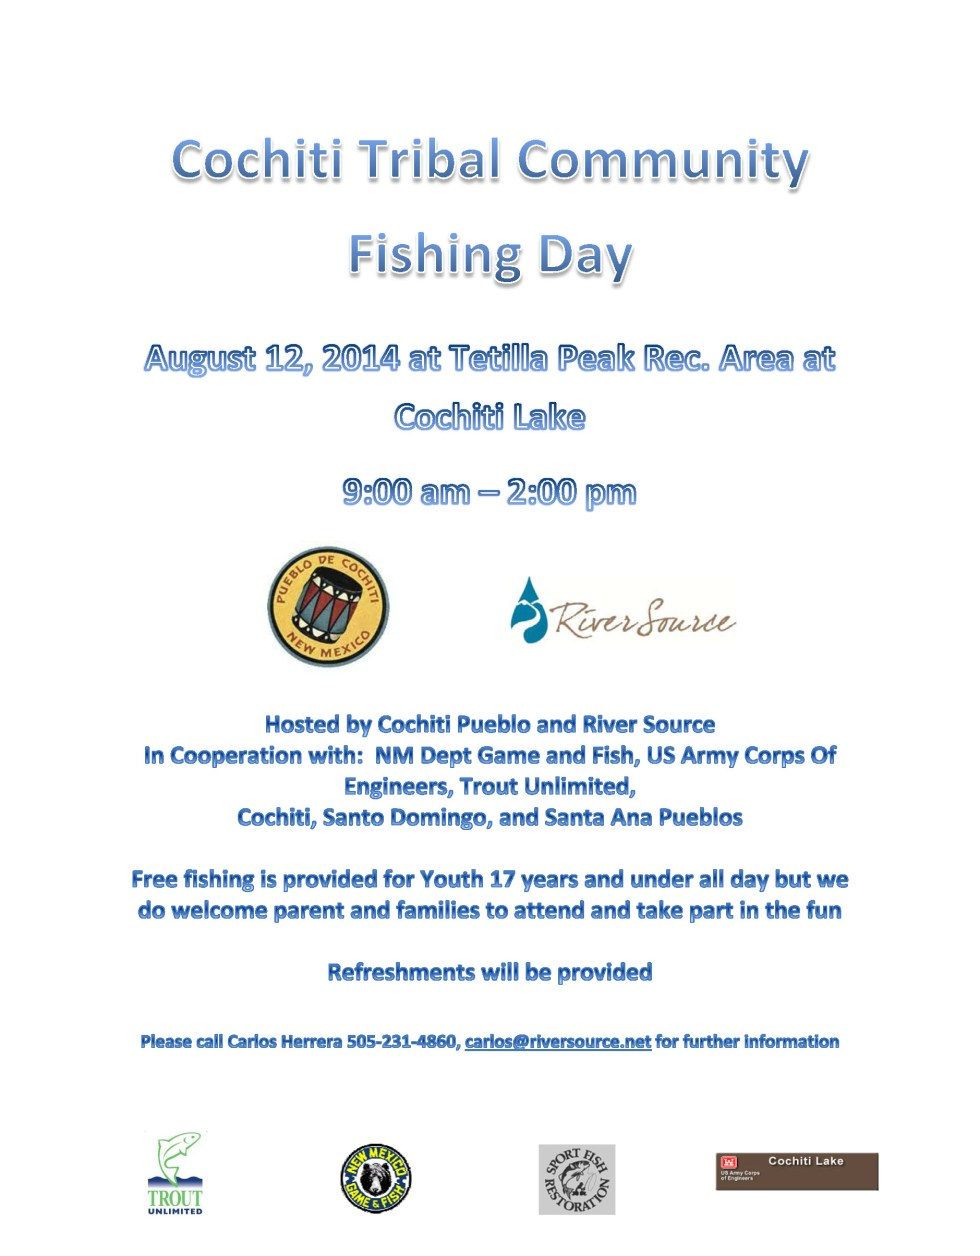 Cochiti Tribal Community Fishing Day FINAL_Page_1